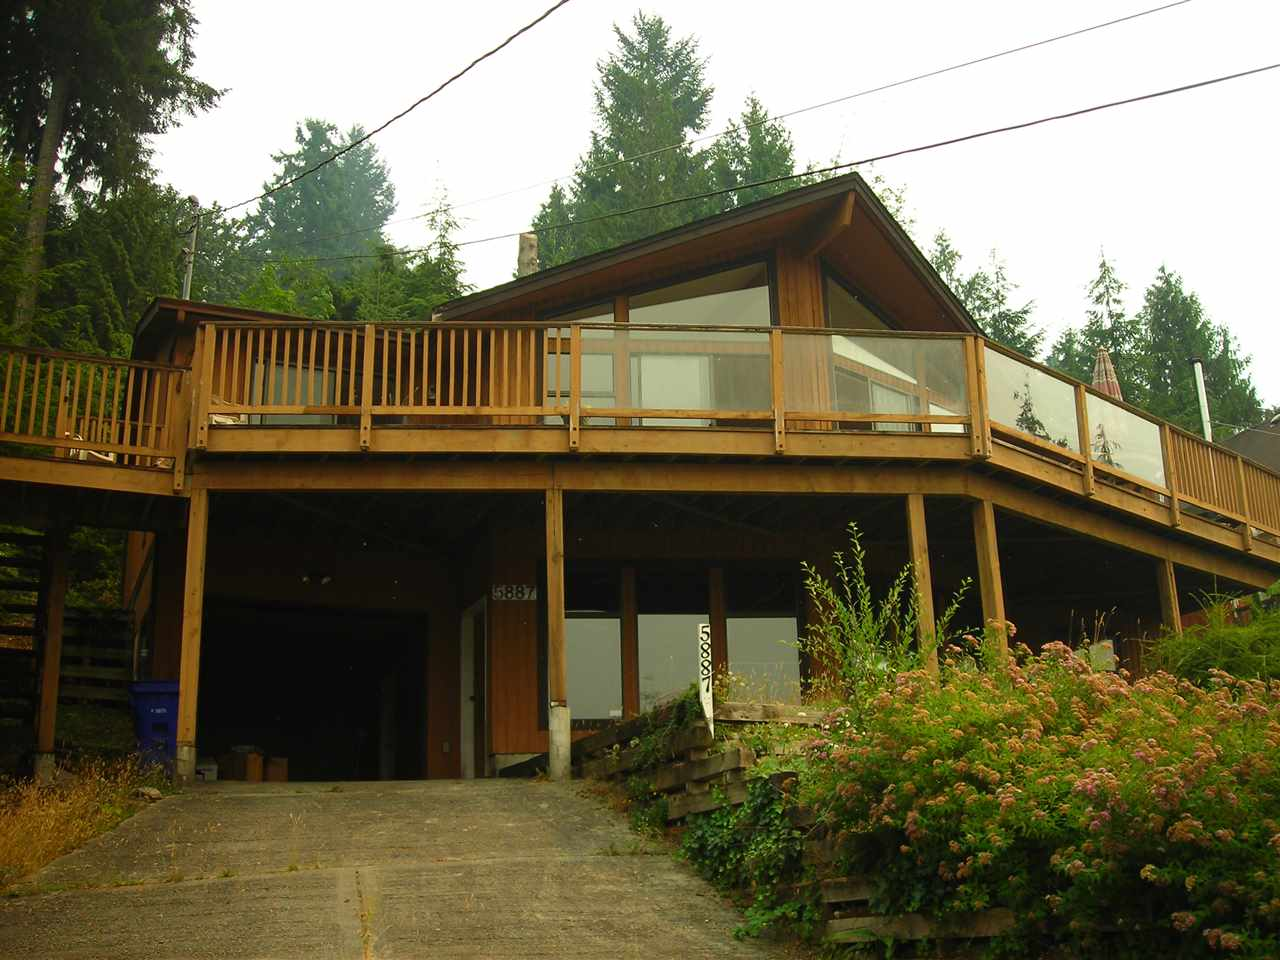 Main Photo: 5887 SANDY HOOK Road in Sechelt: Sechelt District House for sale (Sunshine Coast)  : MLS(r) # R2087513